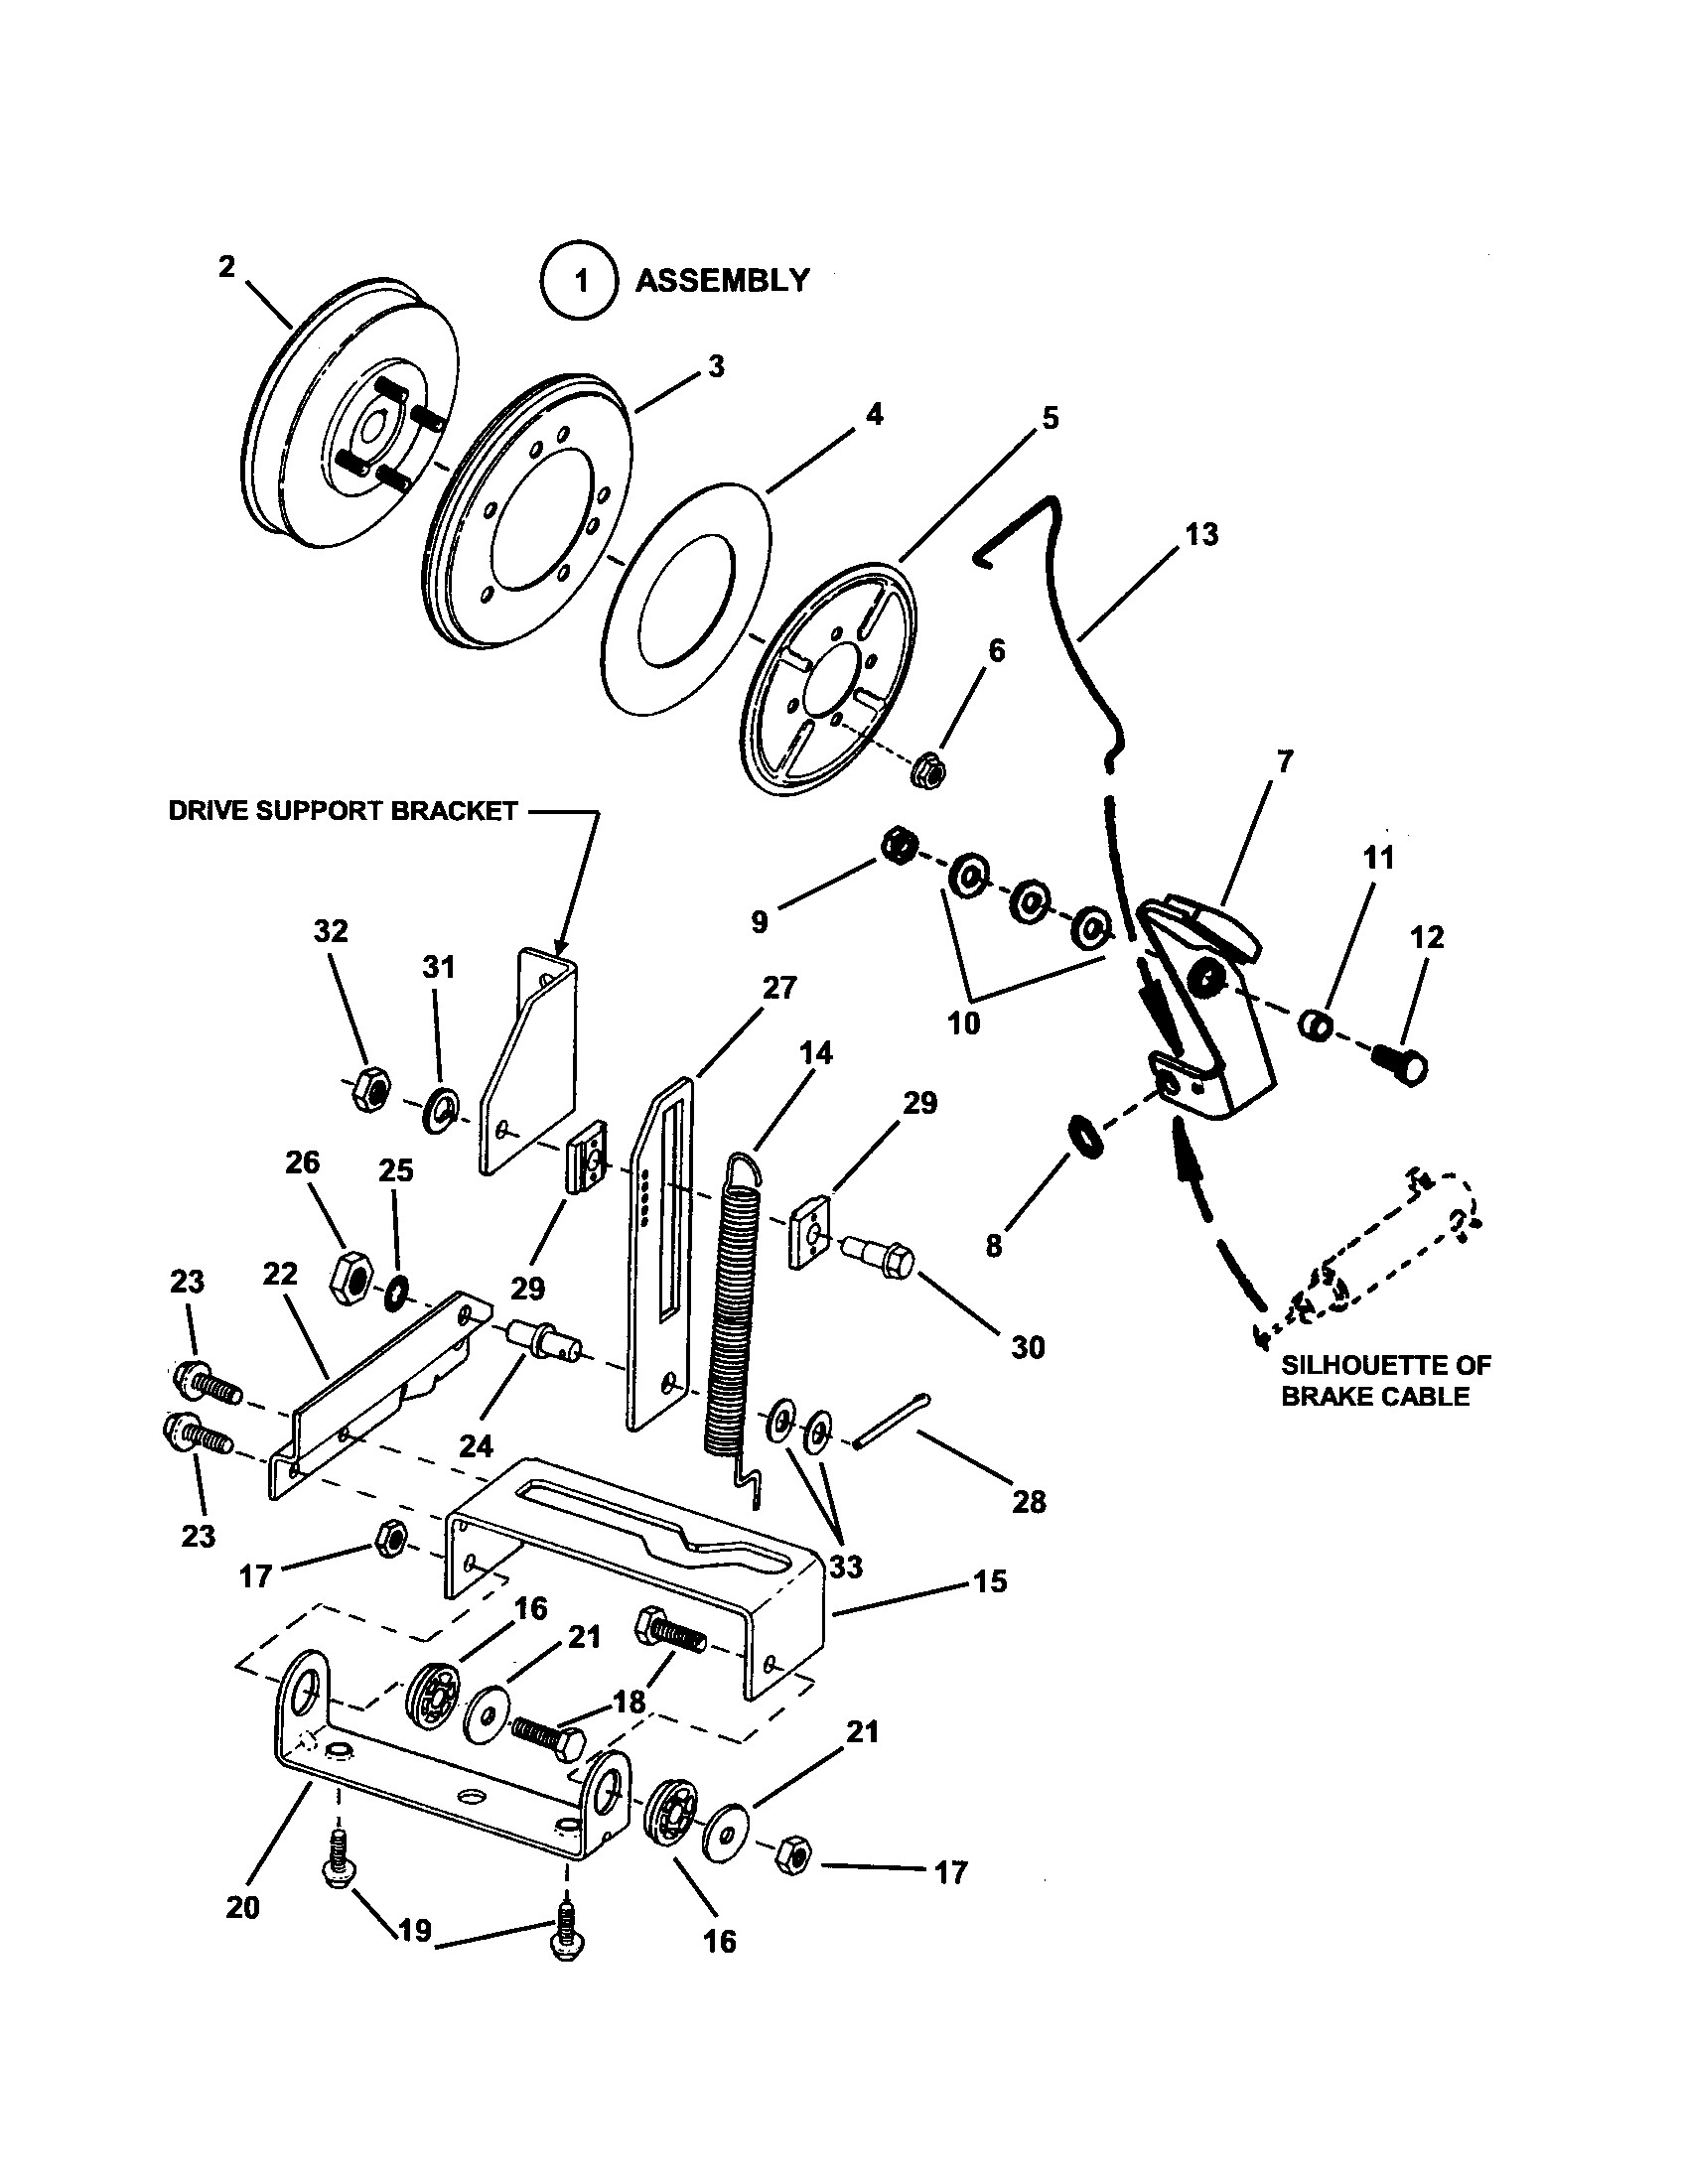 Small Engine Parts Diagram Looking for Snapper Model Wm B Rear Engine Riding Mower Repair Of Small Engine Parts Diagram Looking for Snapper Model Wm B Rear Engine Riding Mower Repair